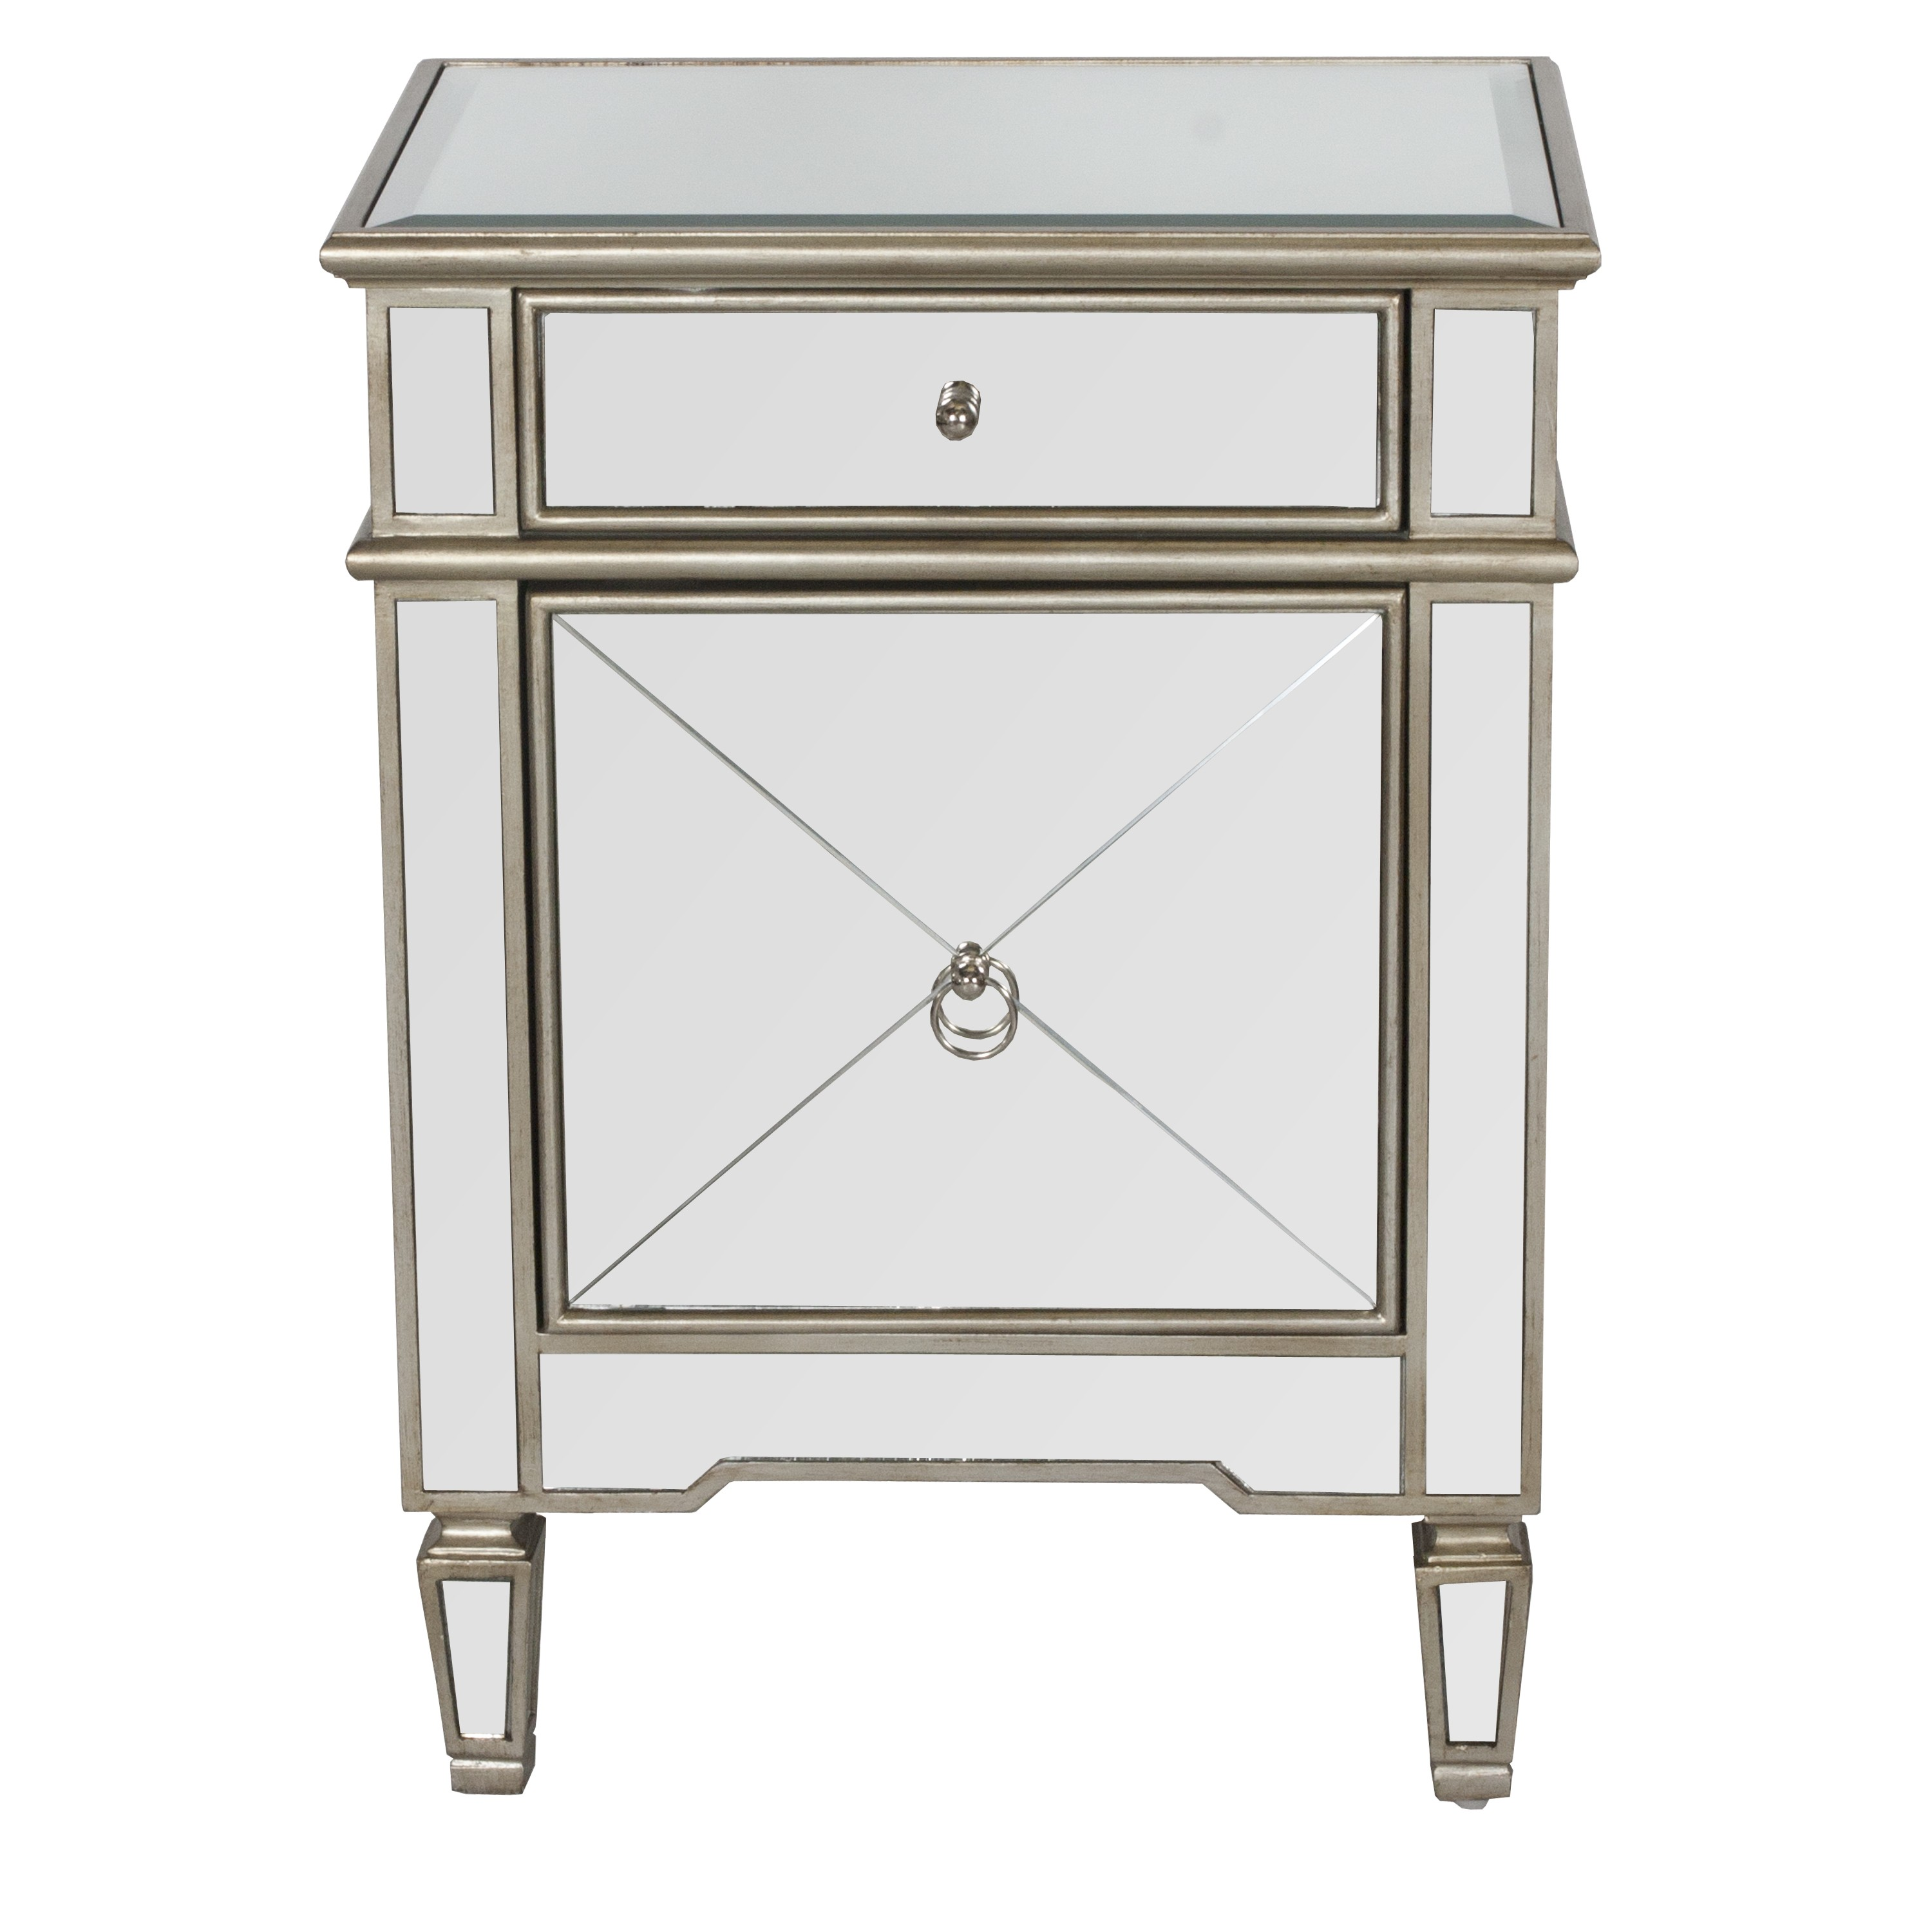 furniture beautiful silver nightstand for contemporary modern table small mirrored dresser and side with drawer tall narrow bedside natural wood cream colored gold accent cabinet